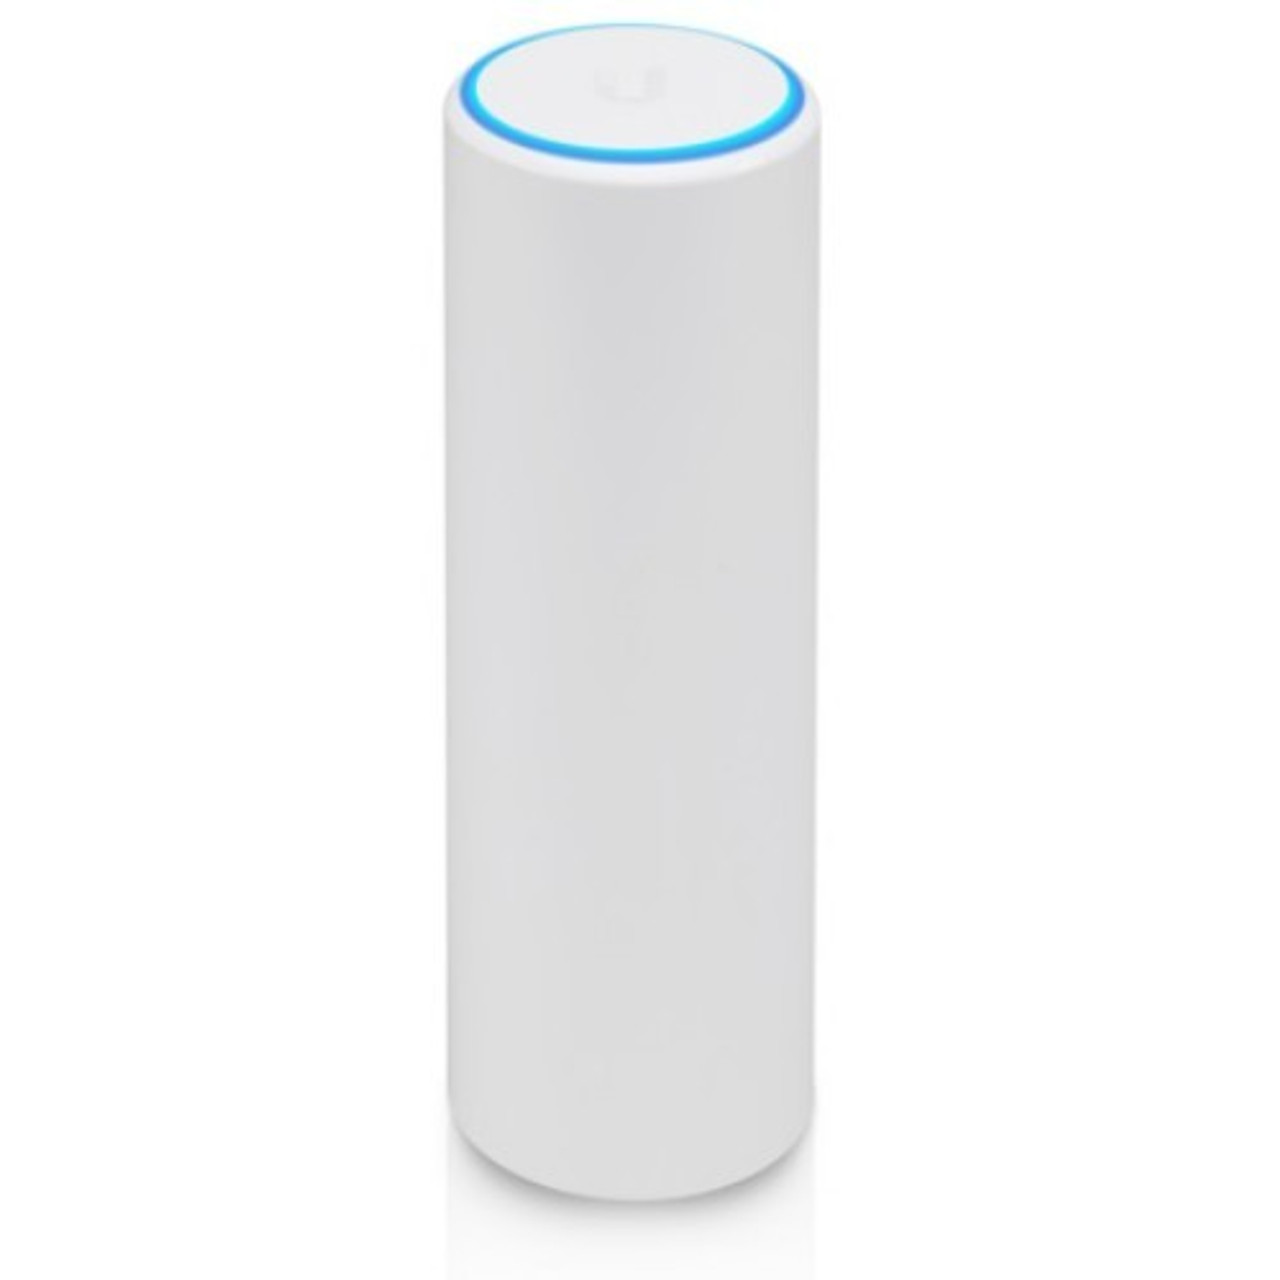 Indoor/Outdoor 4x4 MU-MIMO 802.11AC UniFi Access Point with Versatile Mounting Features